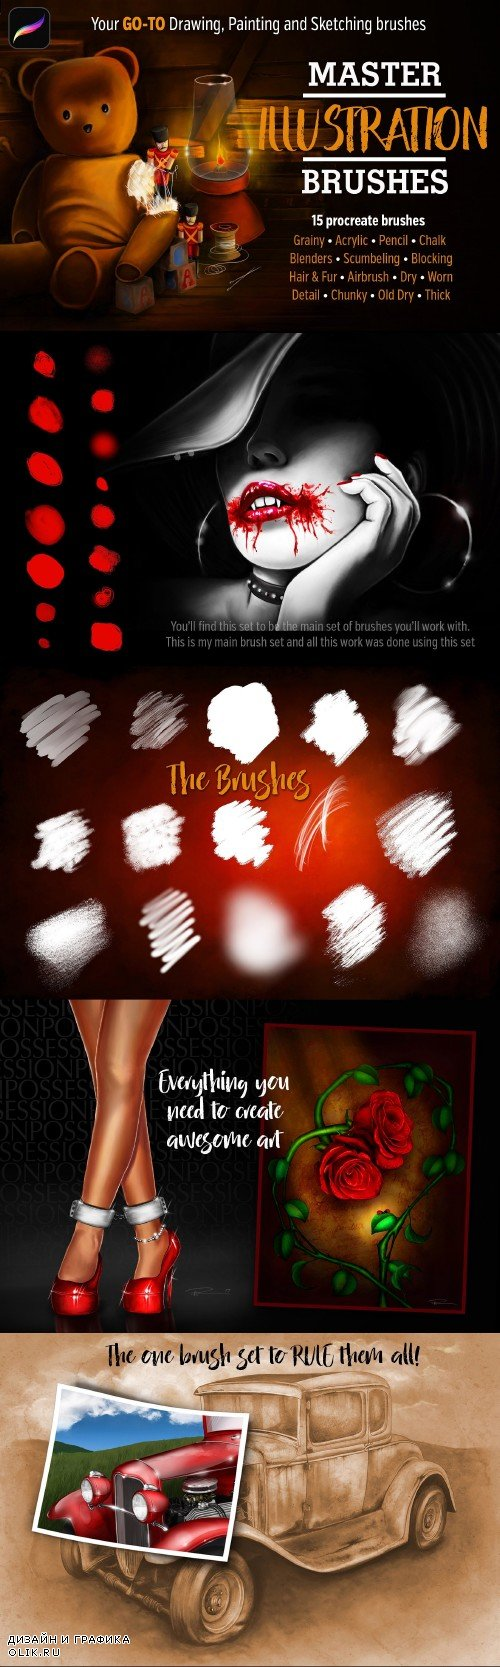 Master Illustration Brushes - 2745846